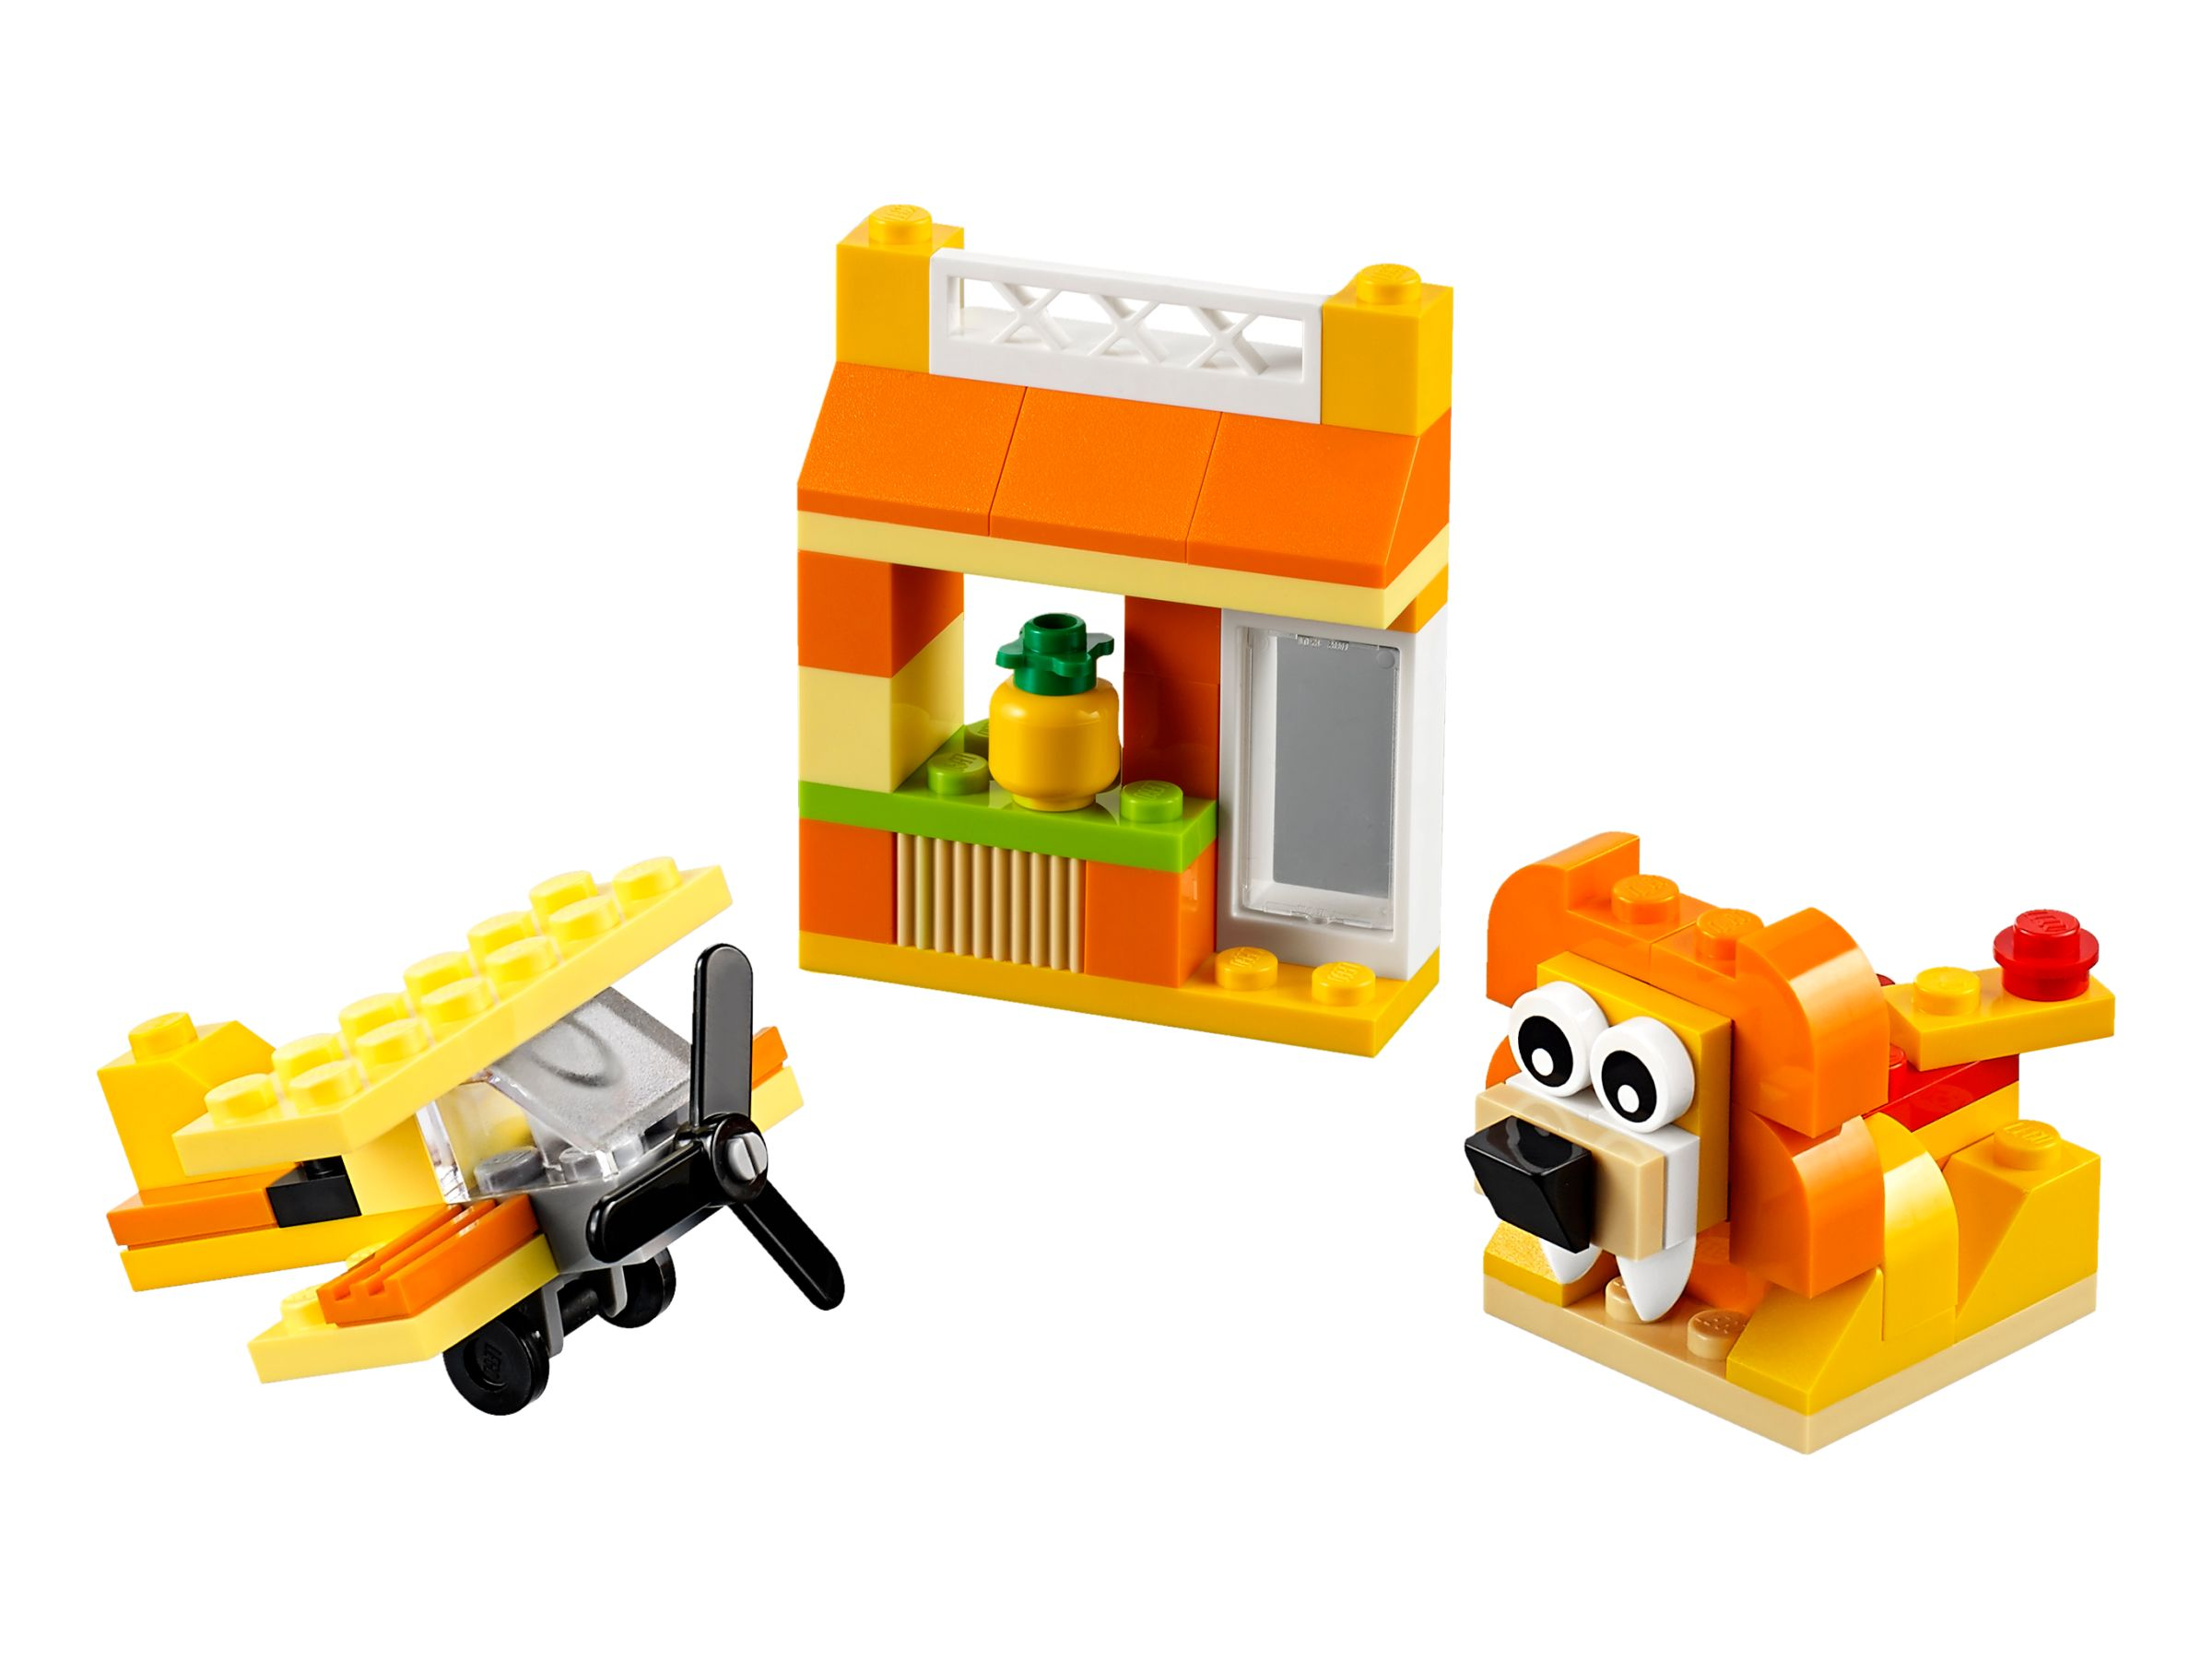 LEGO Classic 10709 Kreativ-Box Orange